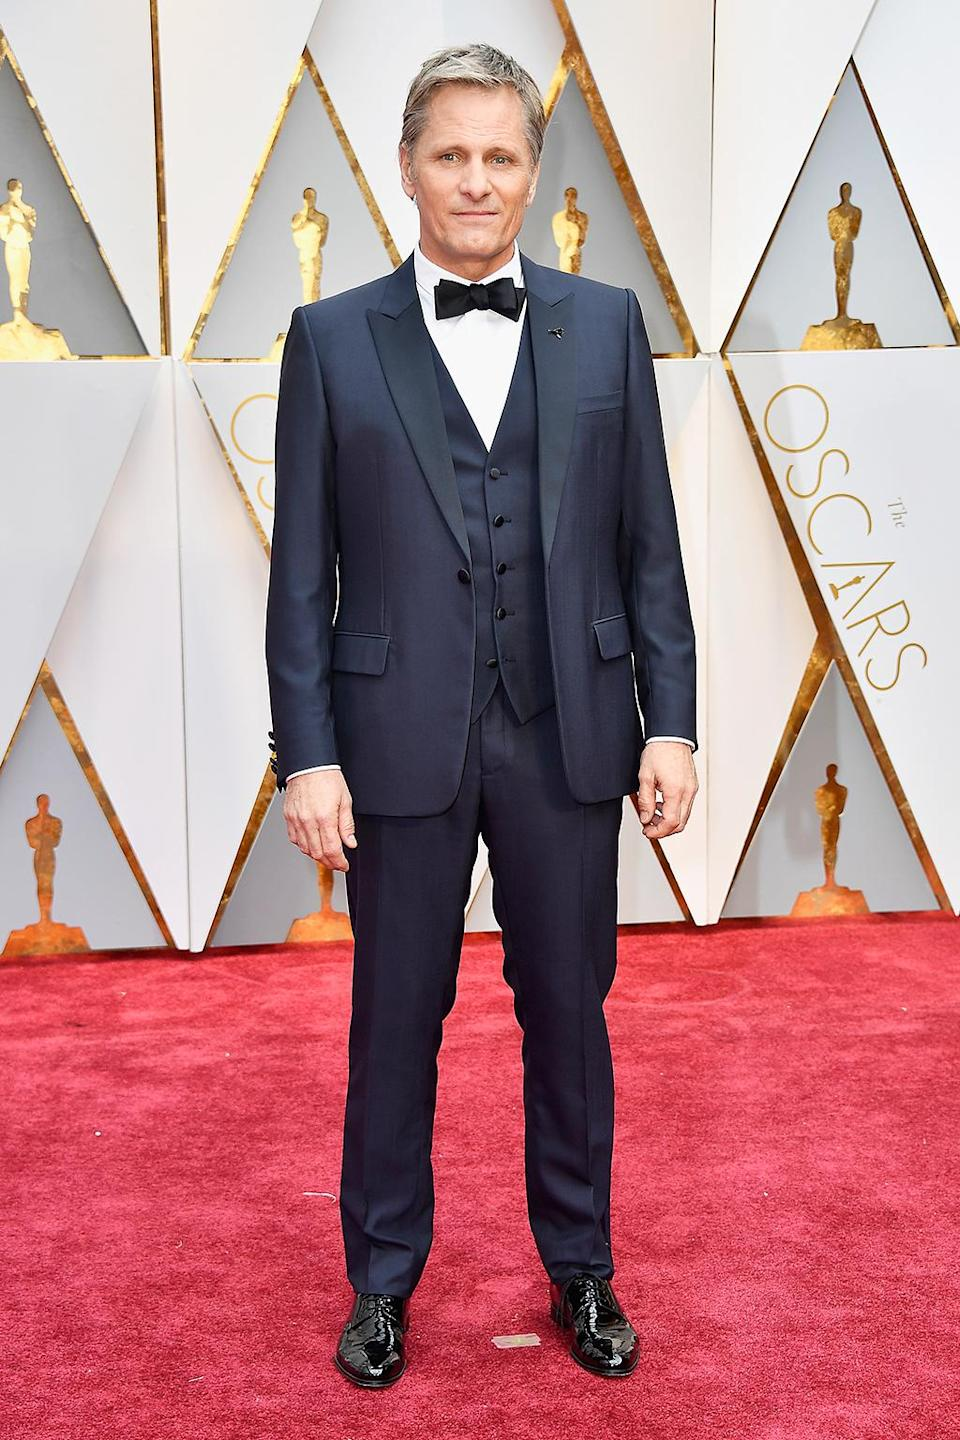 <p>Actor Viggo Mortensen attends the 89th Annual Academy Awards at Hollywood & Highland Center on February 26, 2017 in Hollywood, California. (Photo by Frazer Harrison/Getty Images) </p>